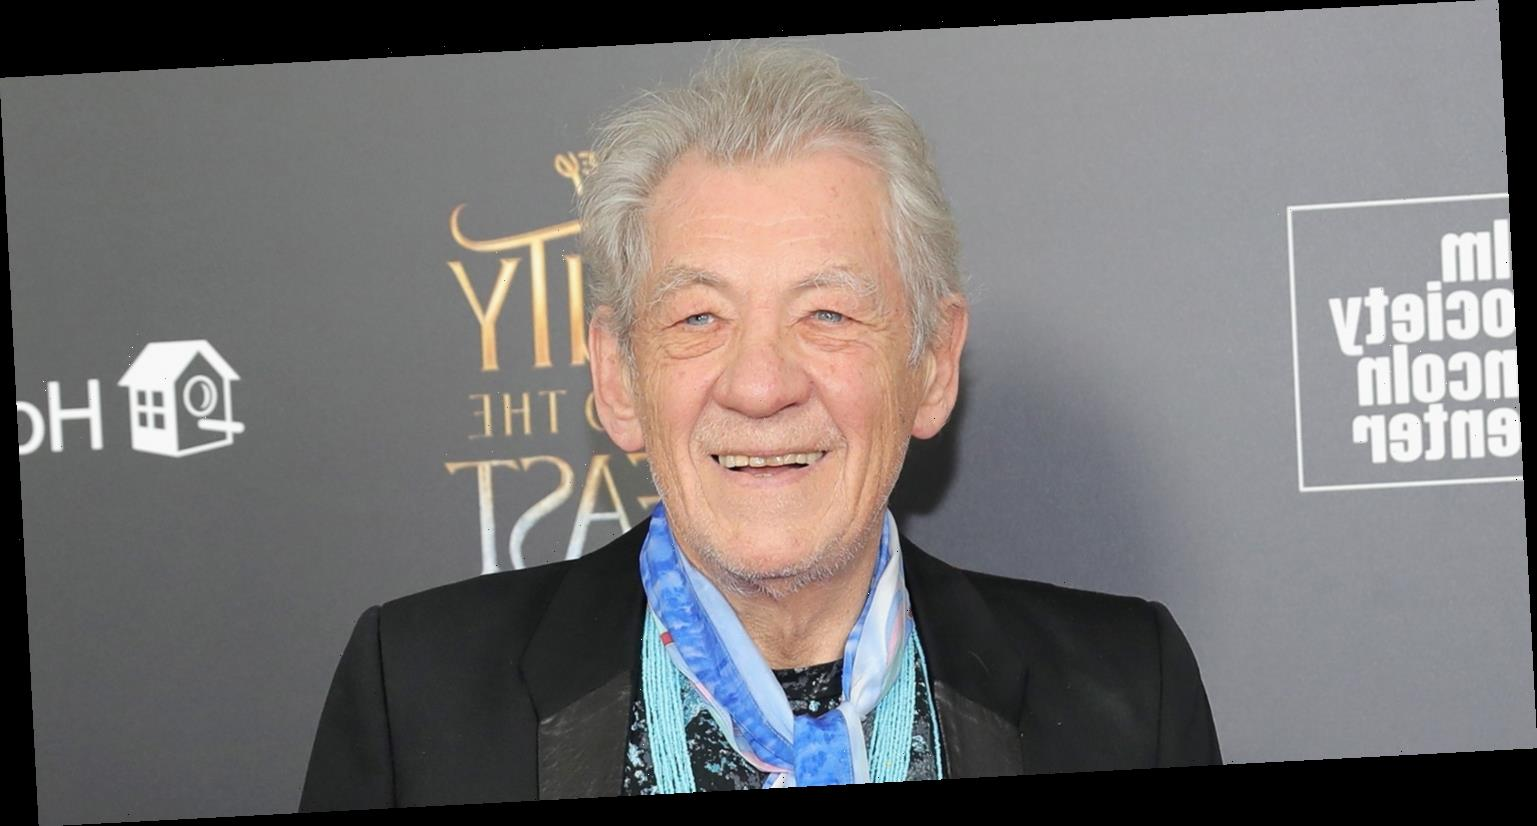 Sir Ian McKellen Becomes One of First Celebrities to Get the COVID-19 Vaccine